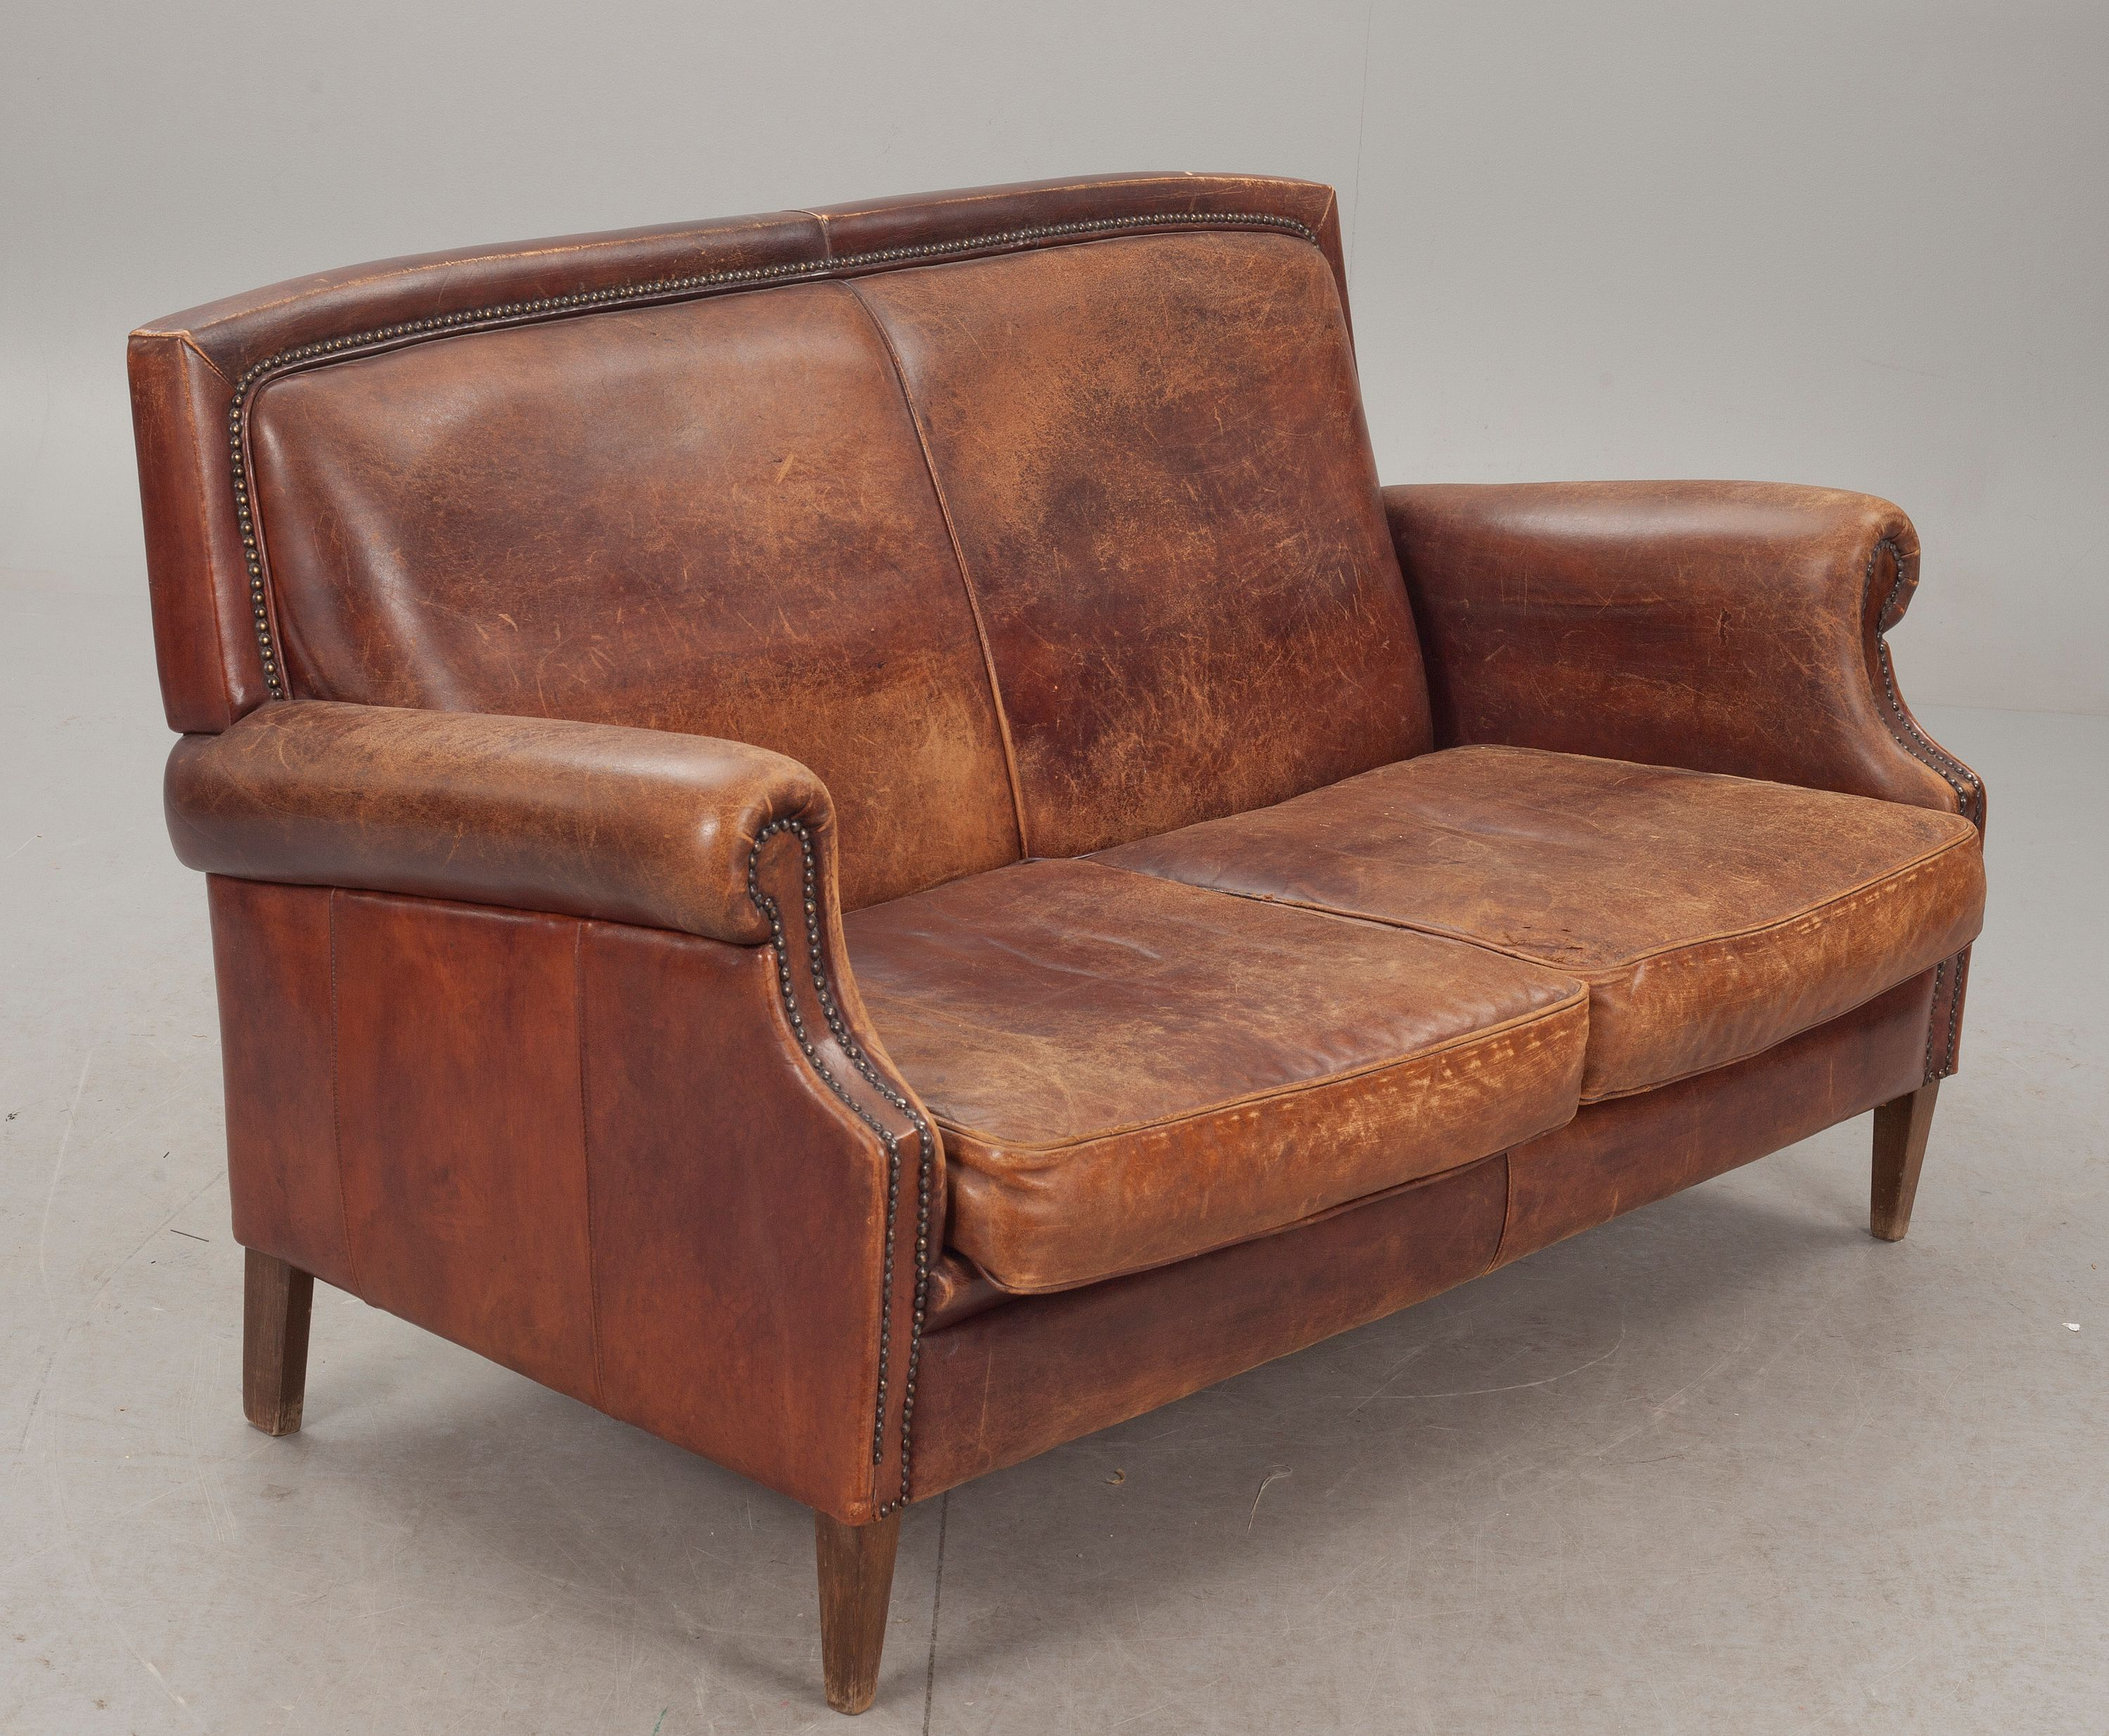 English Sofas Console Or Sofa Tables Like The Style Maybe Different Material